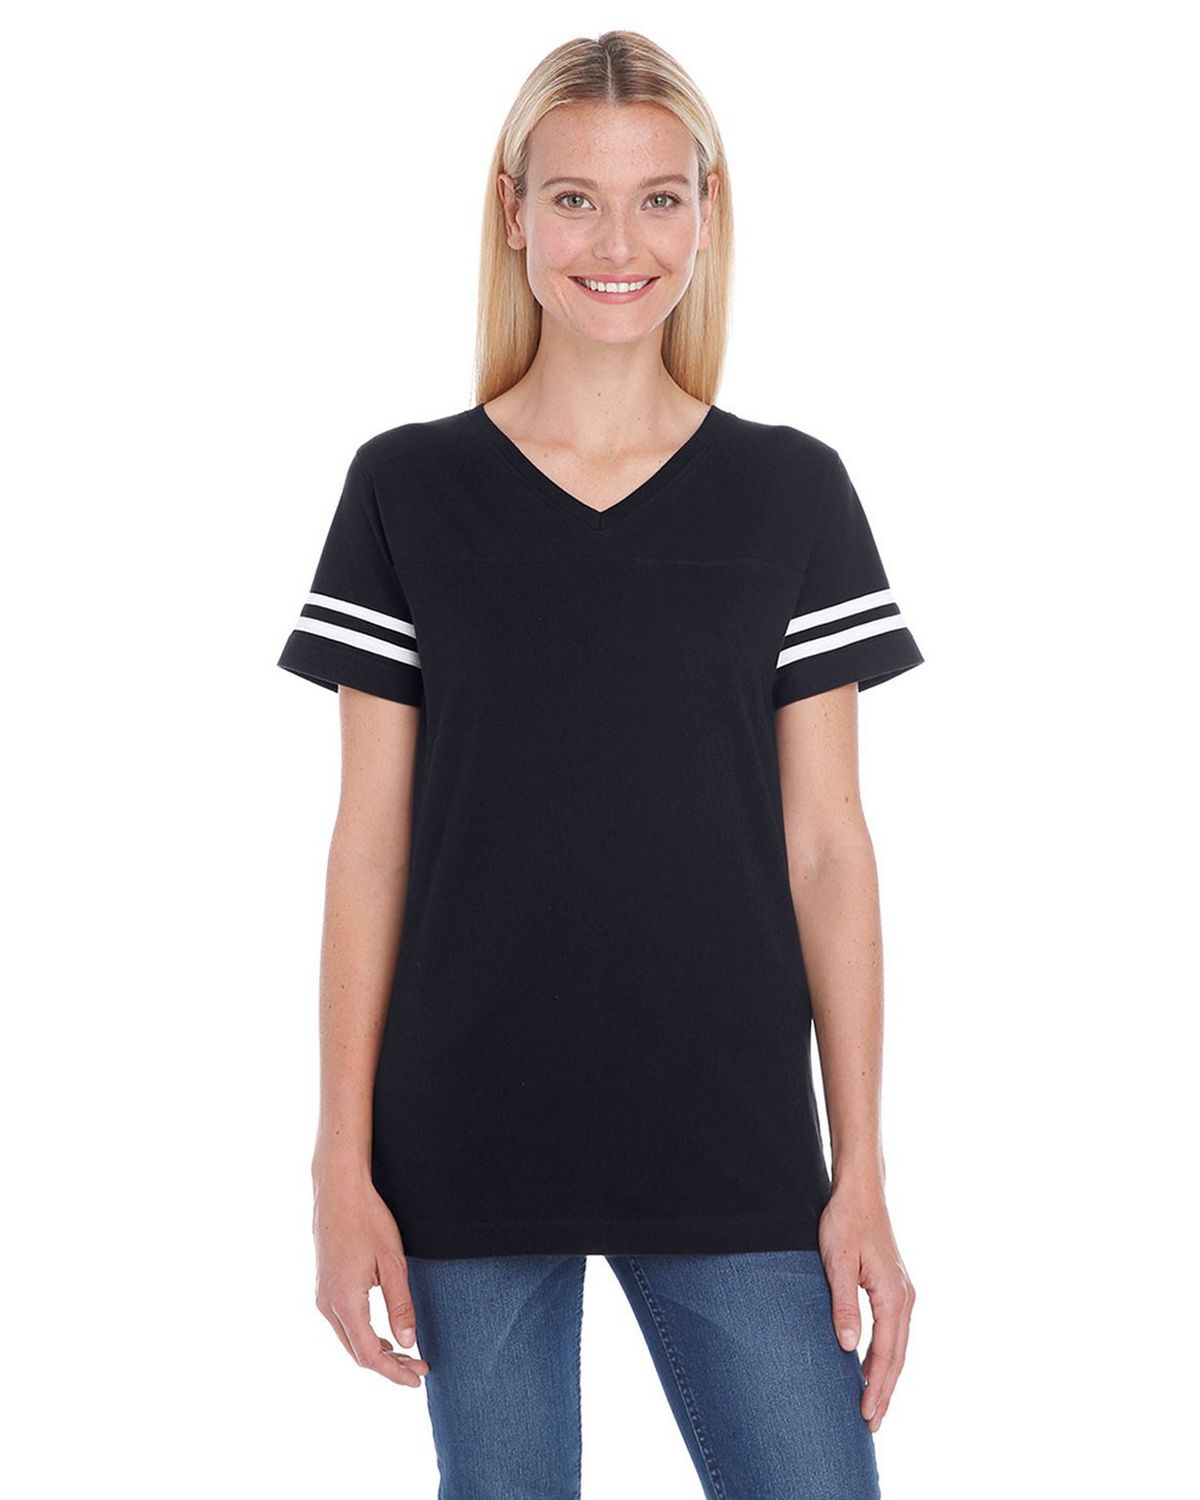 Lat 3537 Ladies Football Tee - Black/White - L 3537